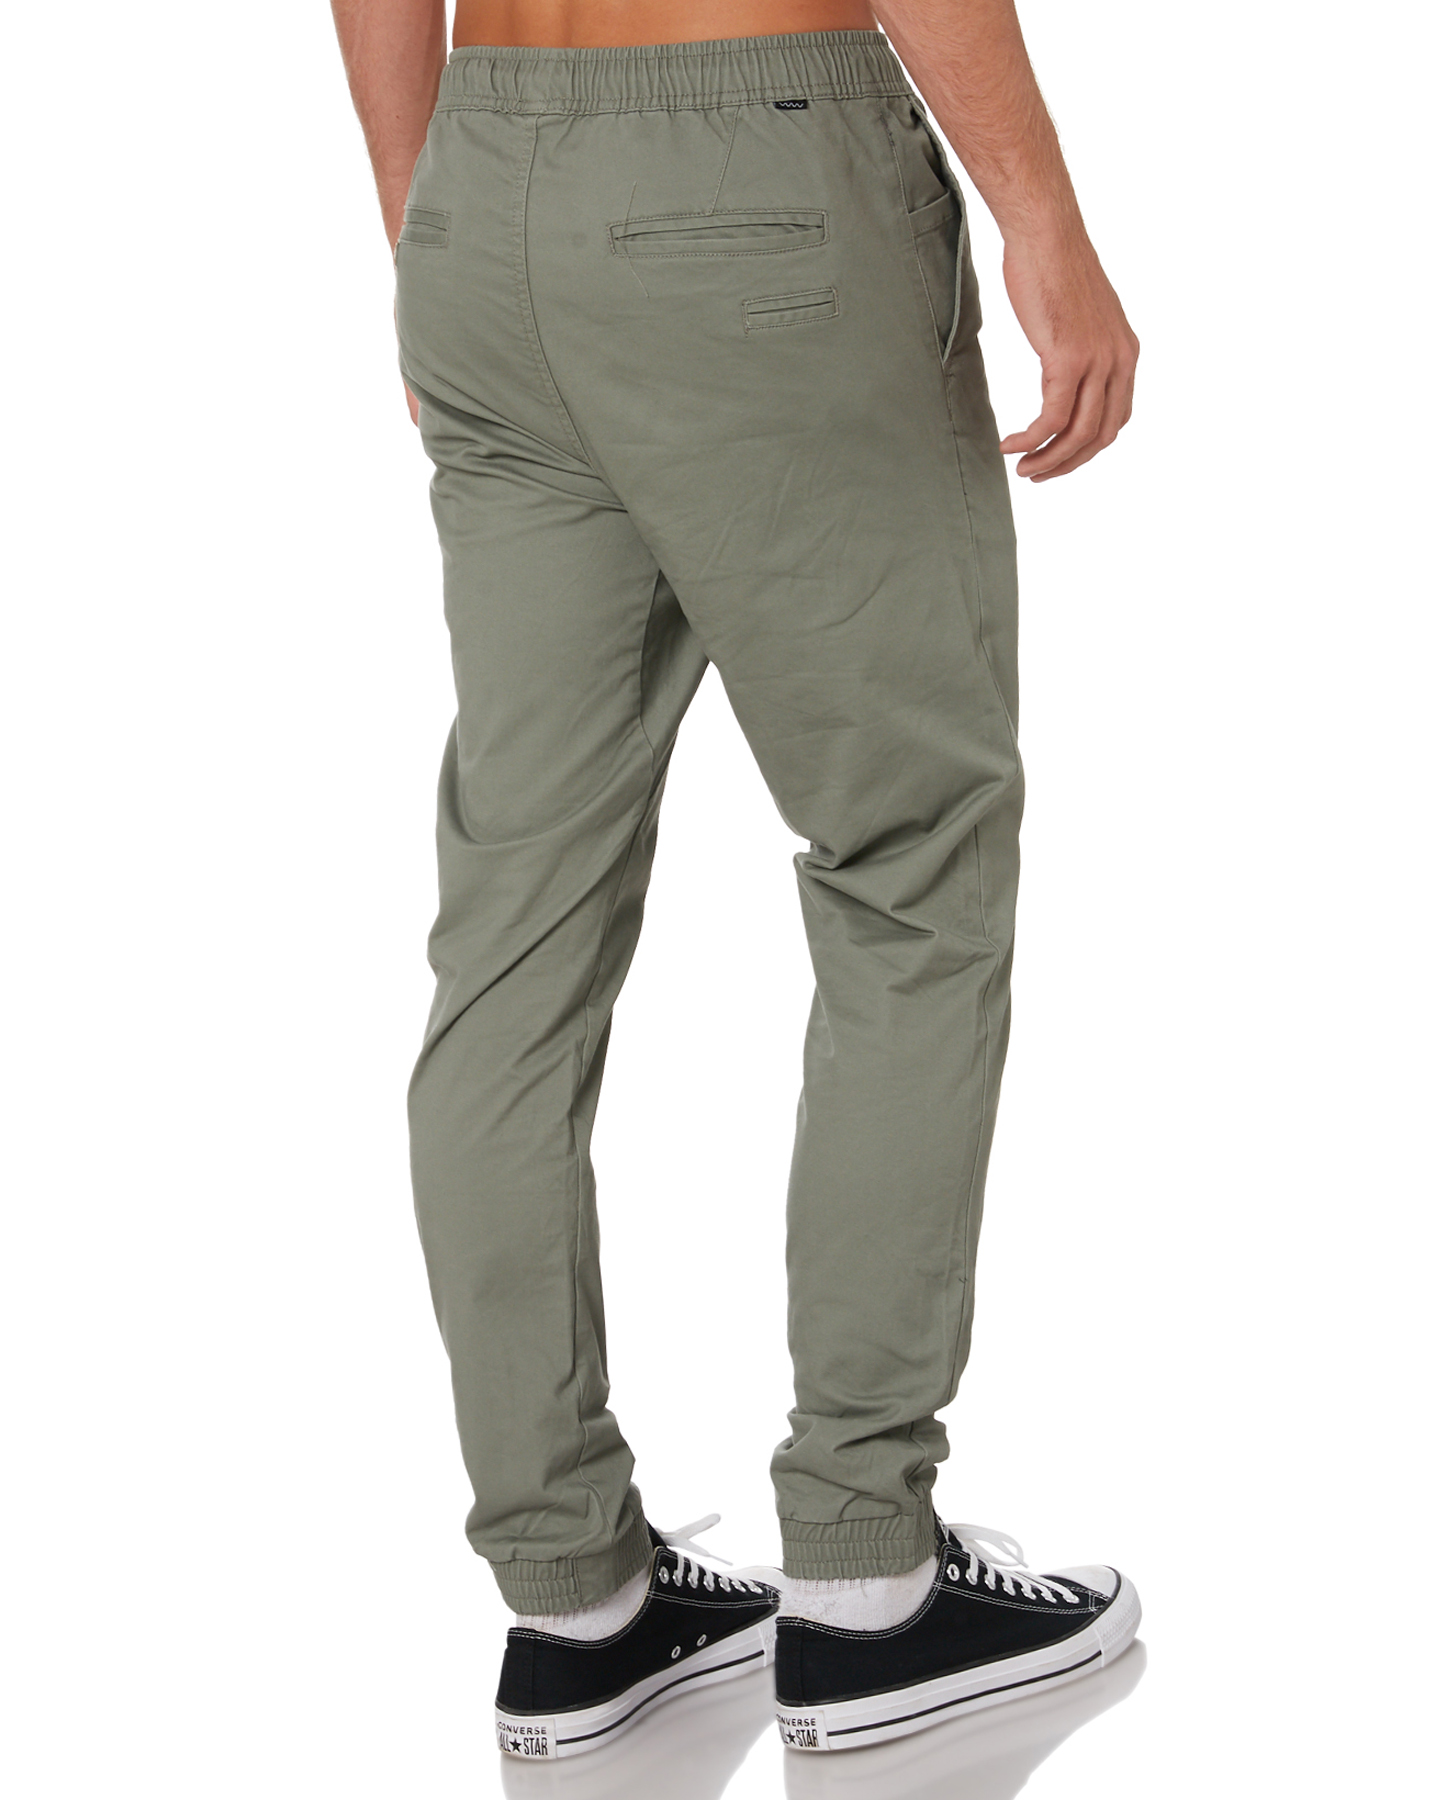 New-Swell-Men-039-s-Blunt-Cargo-Mens-Jogger-Pant-Cotton-Elastane-Green thumbnail 19